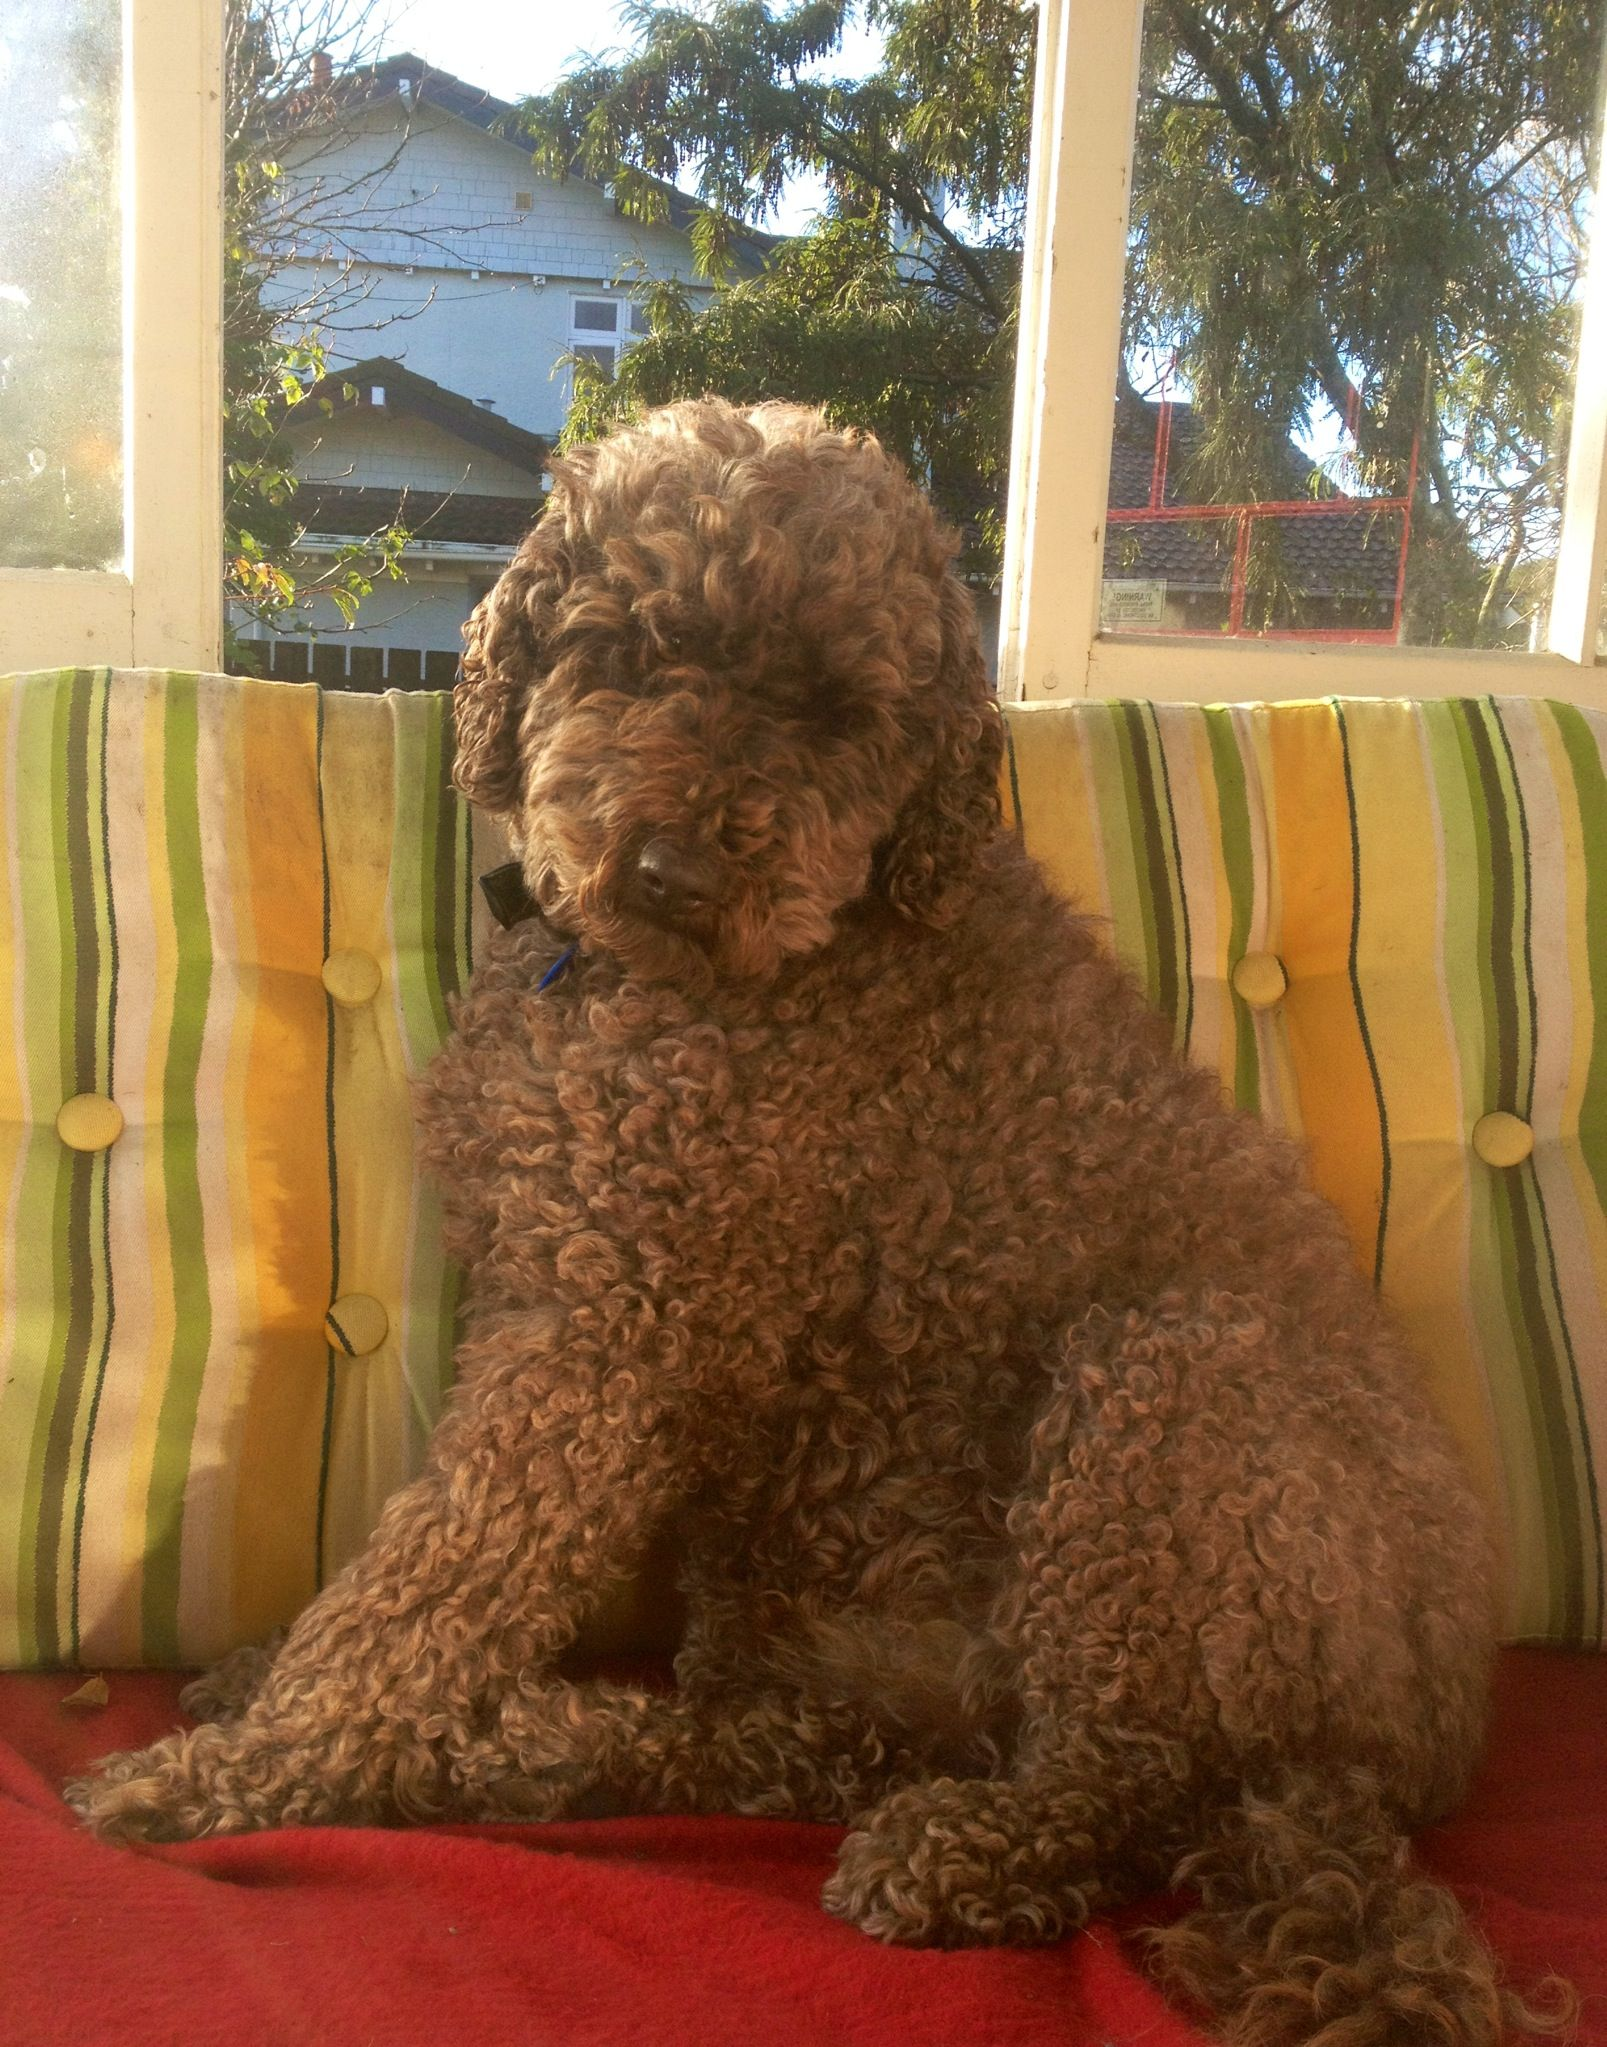 Dougal the labradoodle soaking up the spring sun